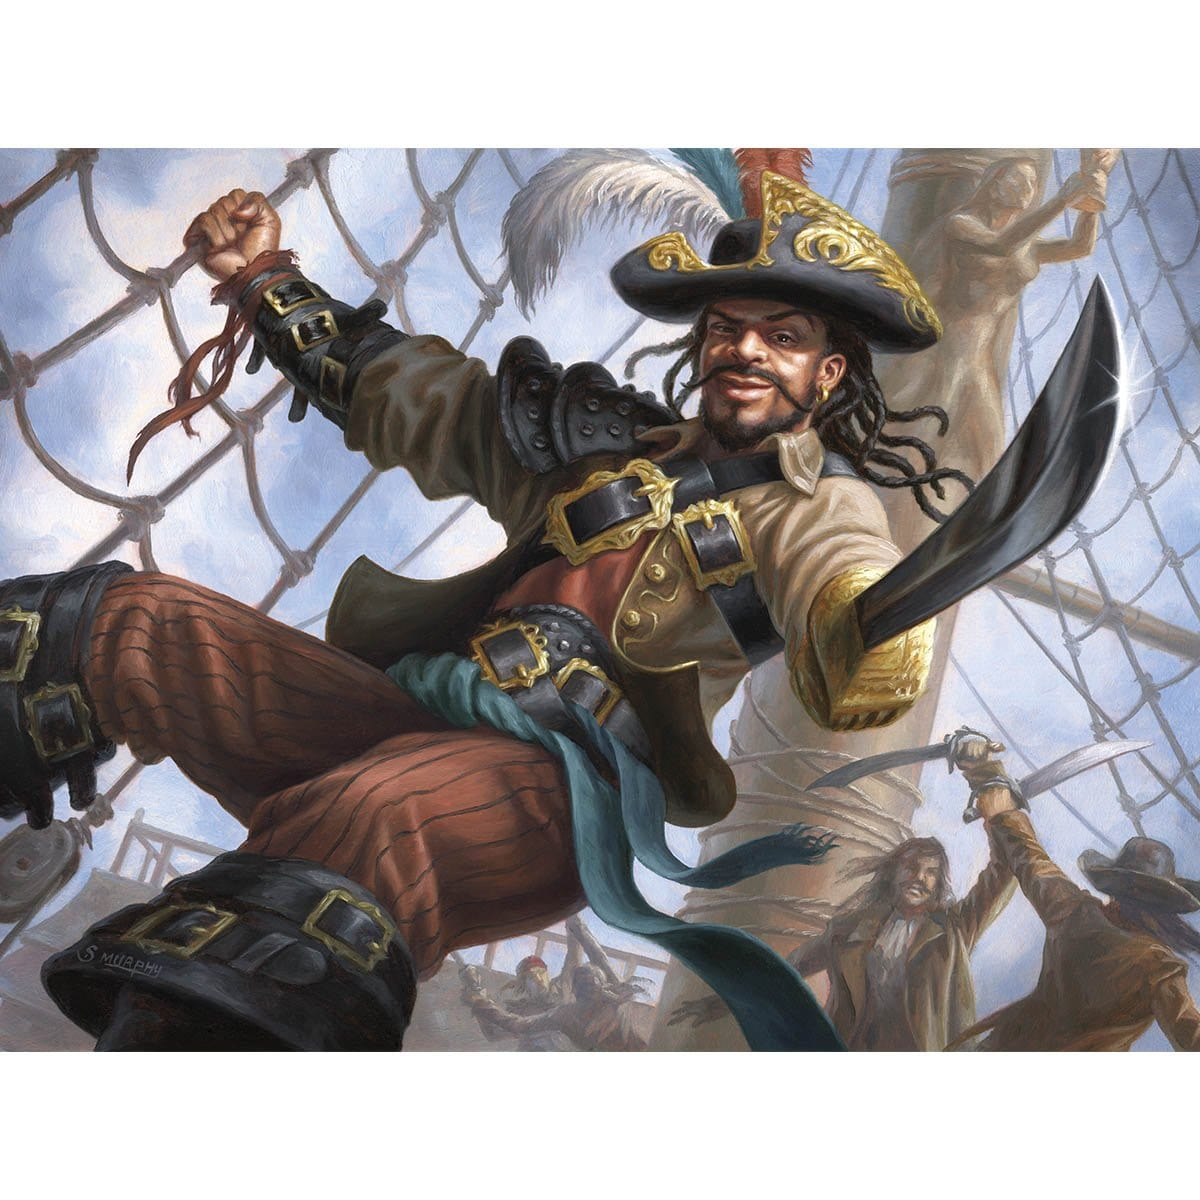 Swaggering Corsair Print - Print - Original Magic Art - Accessories for Magic the Gathering and other card games